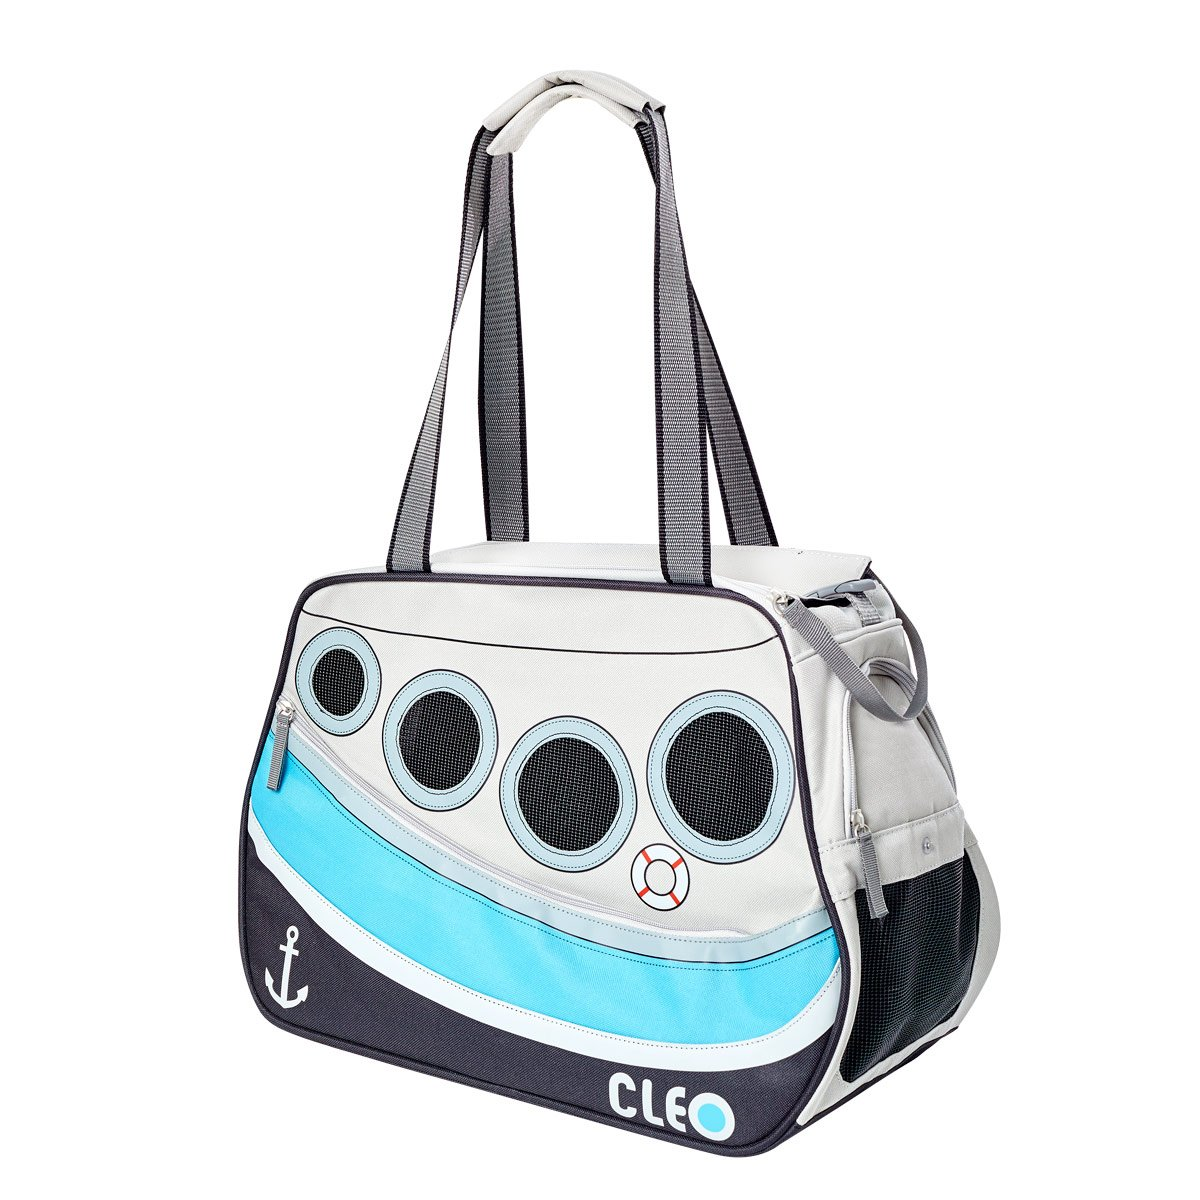 Cleo By Teafco Petoboat Airline Approved (19''Medium) Pet Carrier - Ocean Blue/Gray